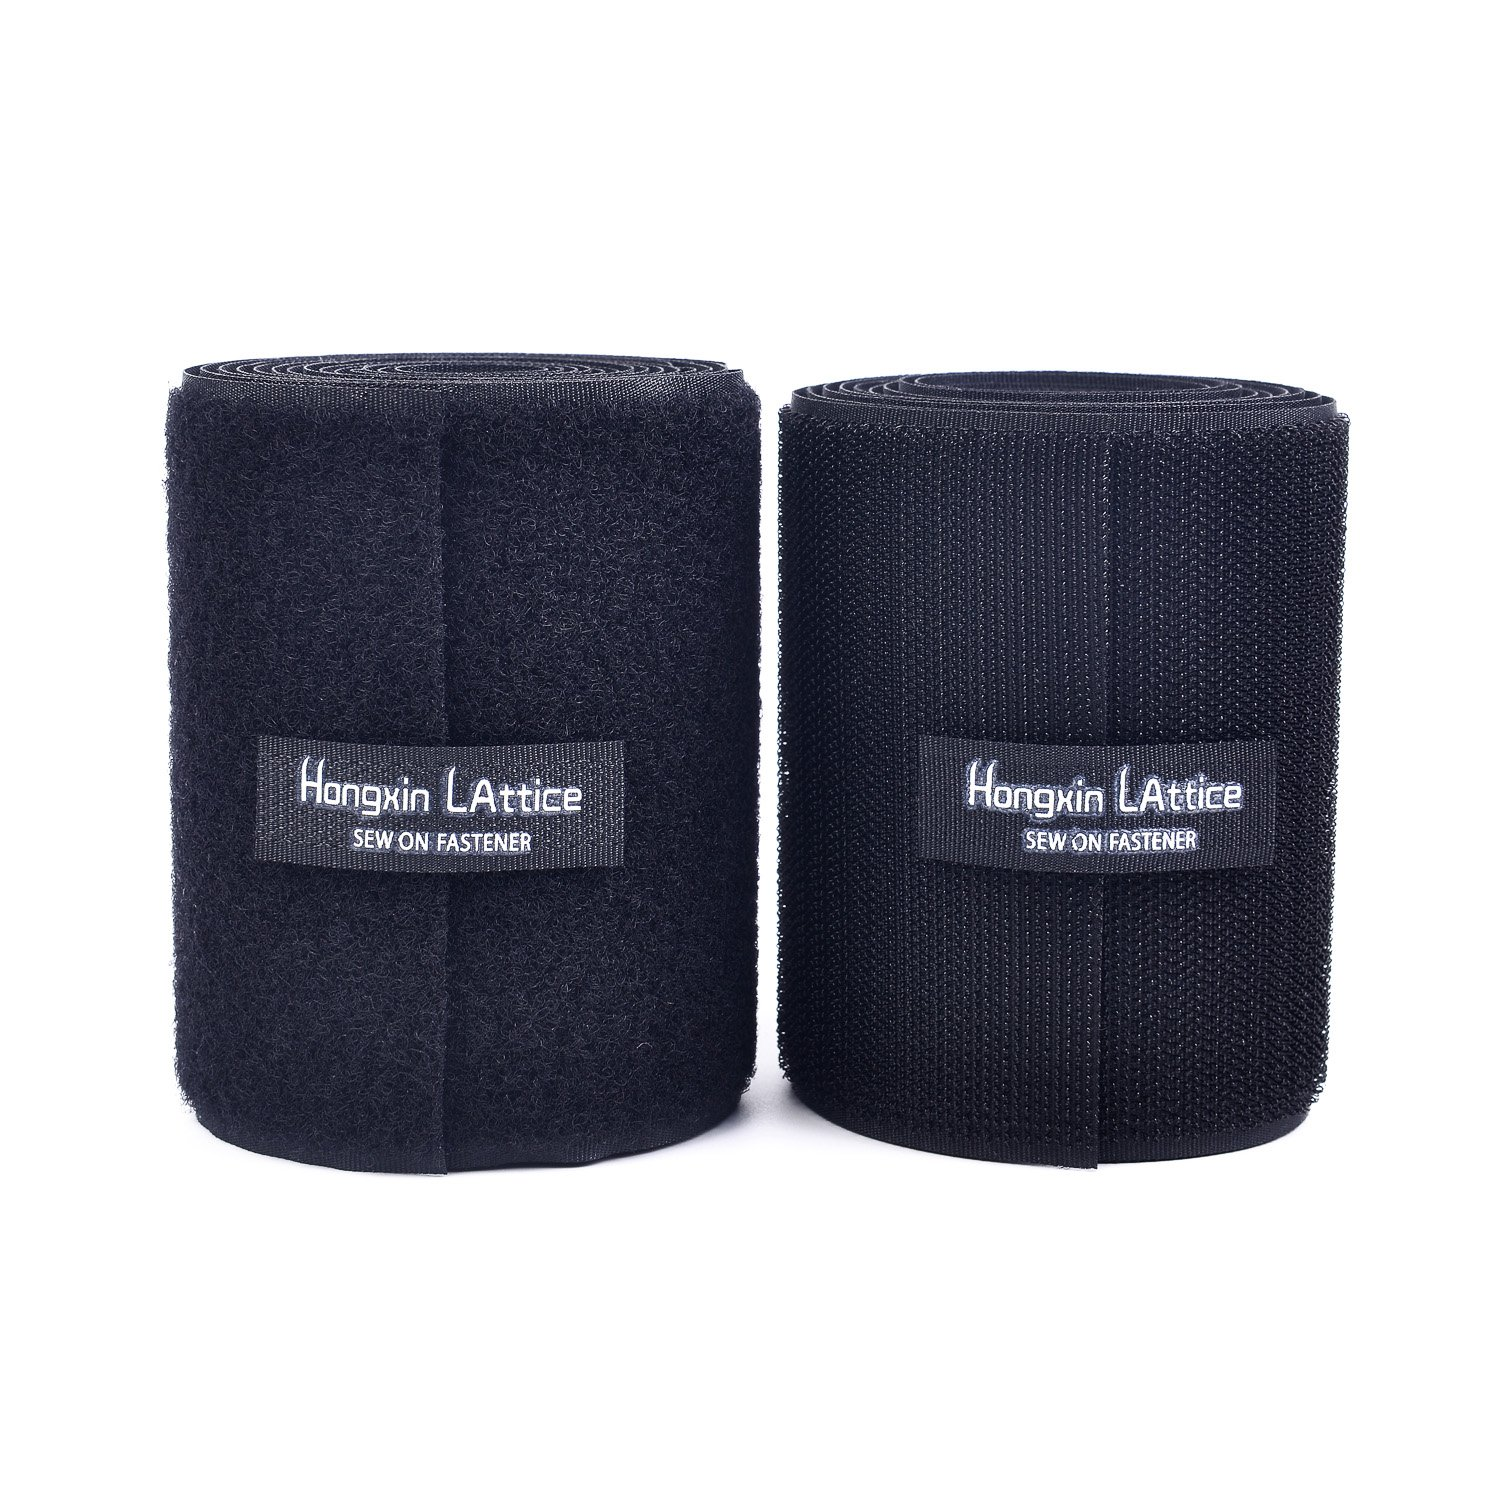 10CM Wide(Approx 4'') 2 Meter Long Sew On Hook And Loop Strips Set With Non-Adhesive Back Nylon Fabric Fastener Black